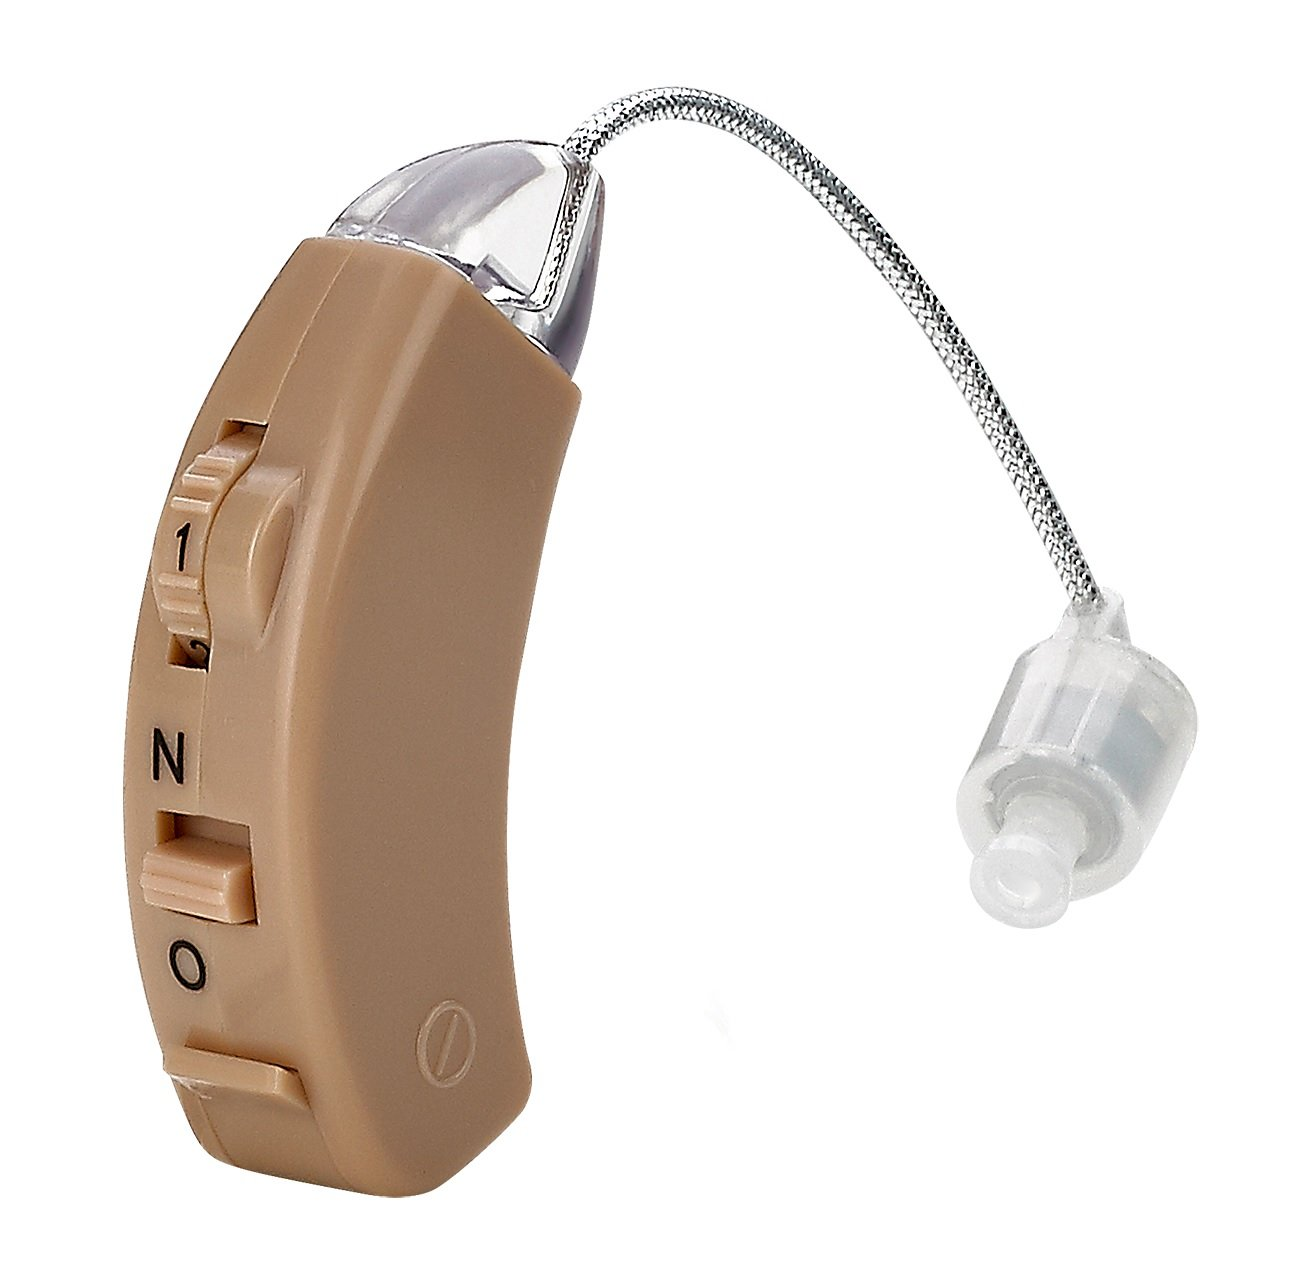 MEDca Hearing Amplifier, Personal Sound, Digital Feedback Cancellation and Noise Reduction,